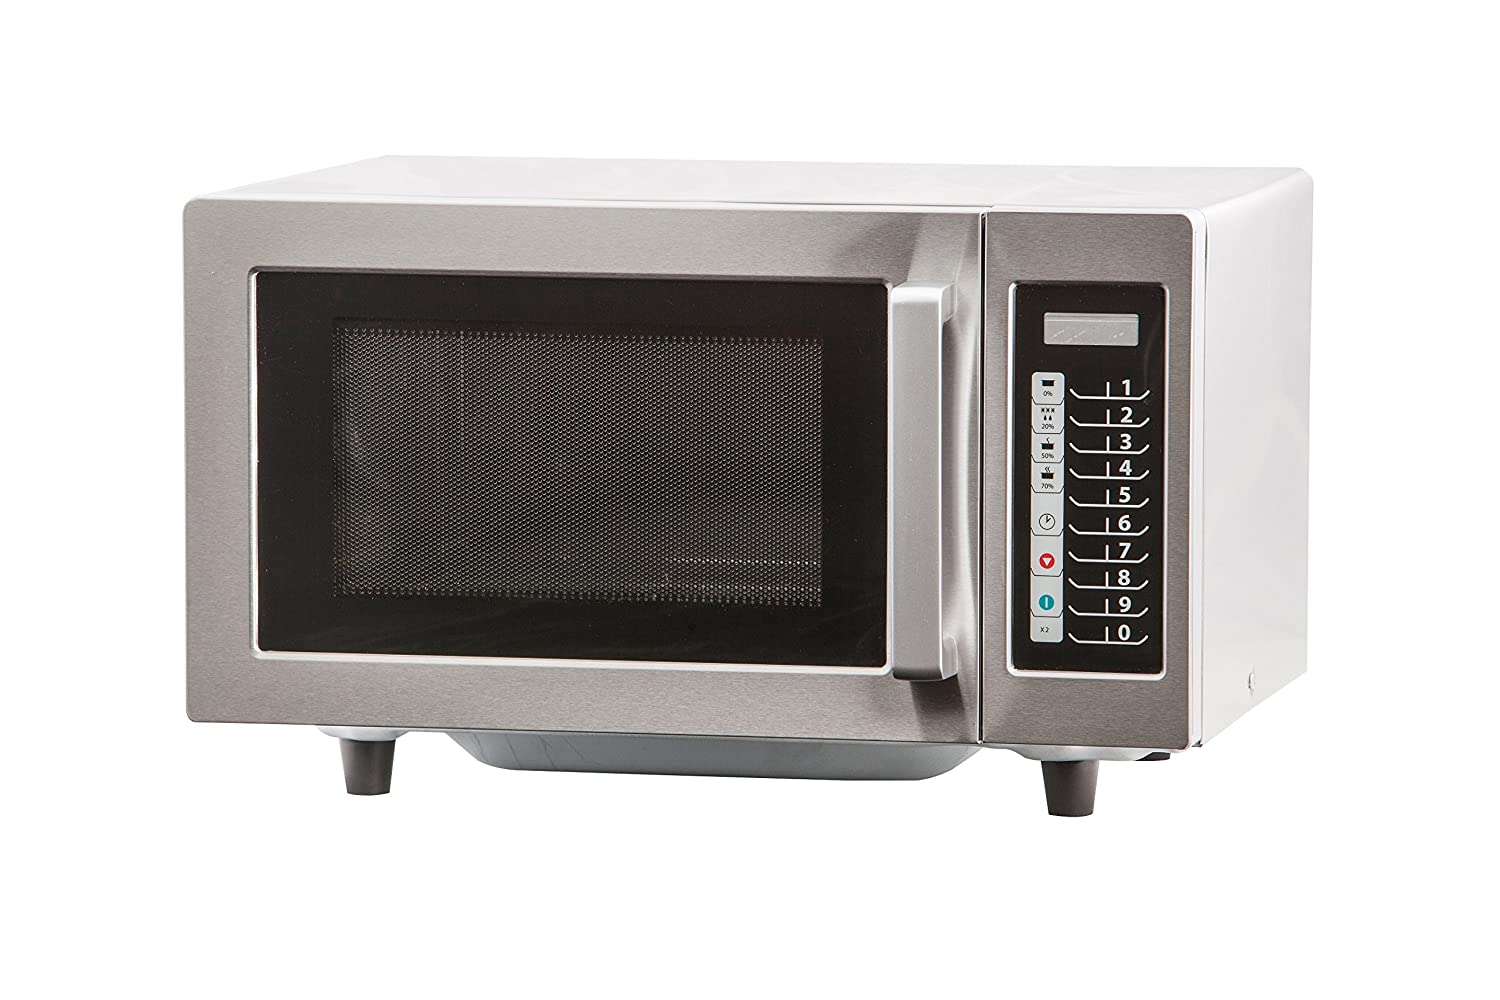 Amana RMS10TS Medium Volume Microwave Oven, 1000W